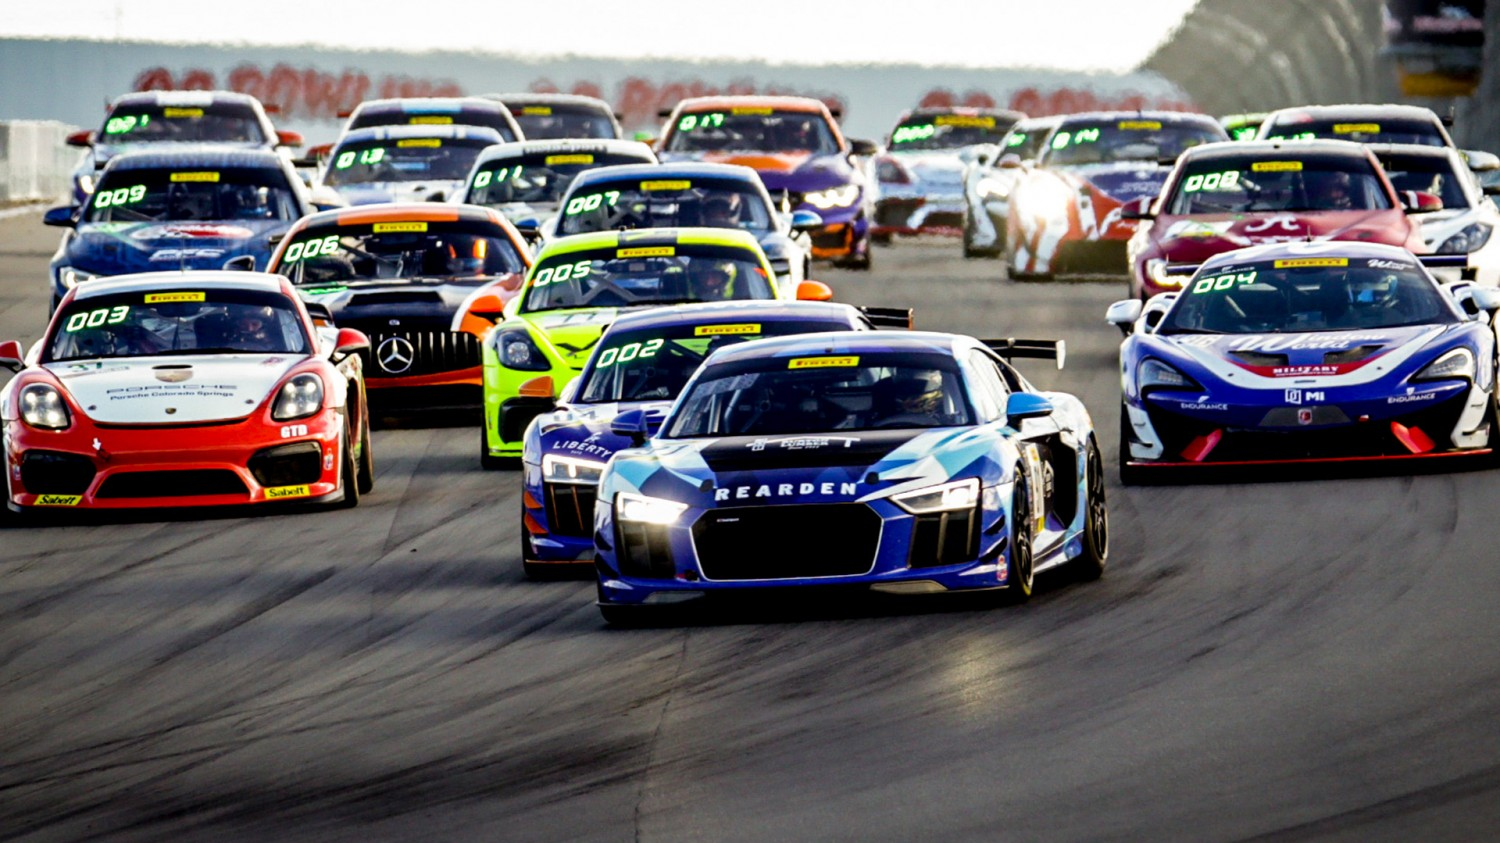 Liefooghe/Quinlan, Hart/Travis Ready for SprintX Battle at Road America